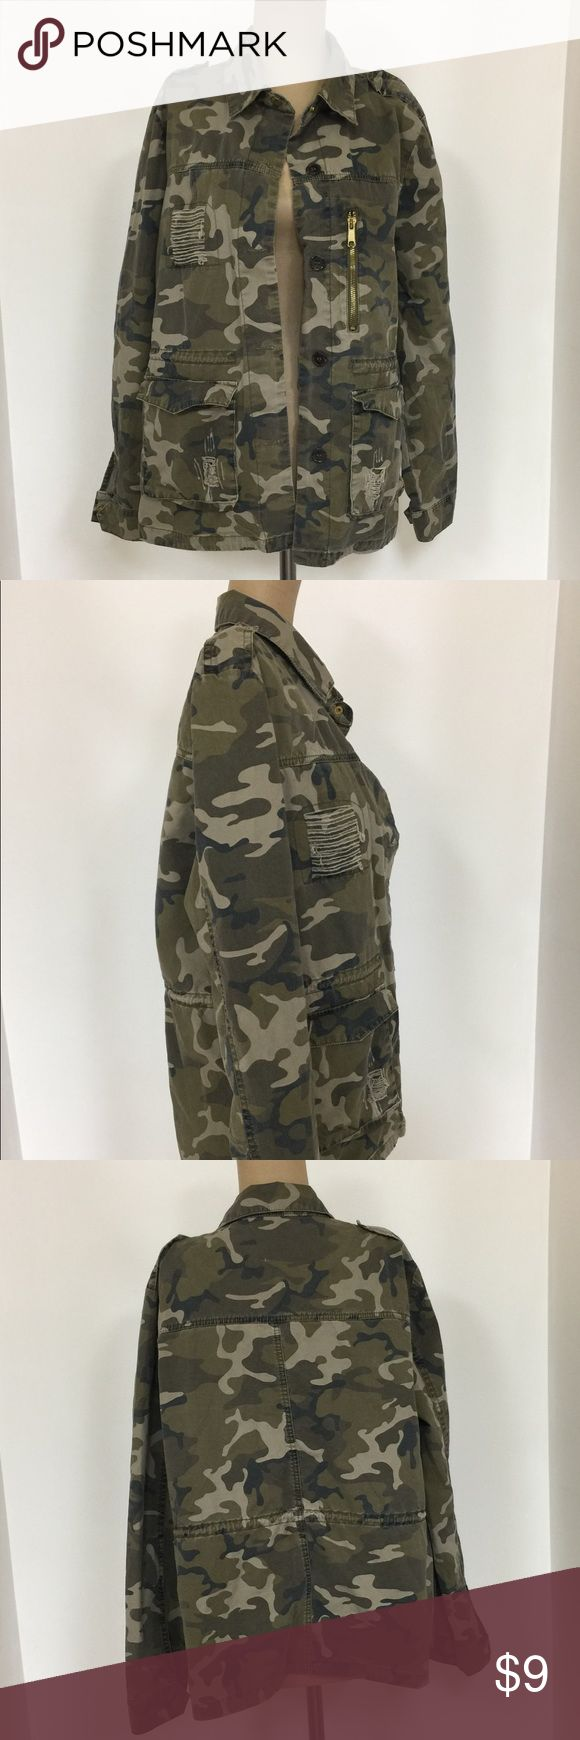 Camo jacket (((((WOMENS SIZE L)))))) Women's light weight camo jacket  Size: large In good condition love tree Jackets & Coats